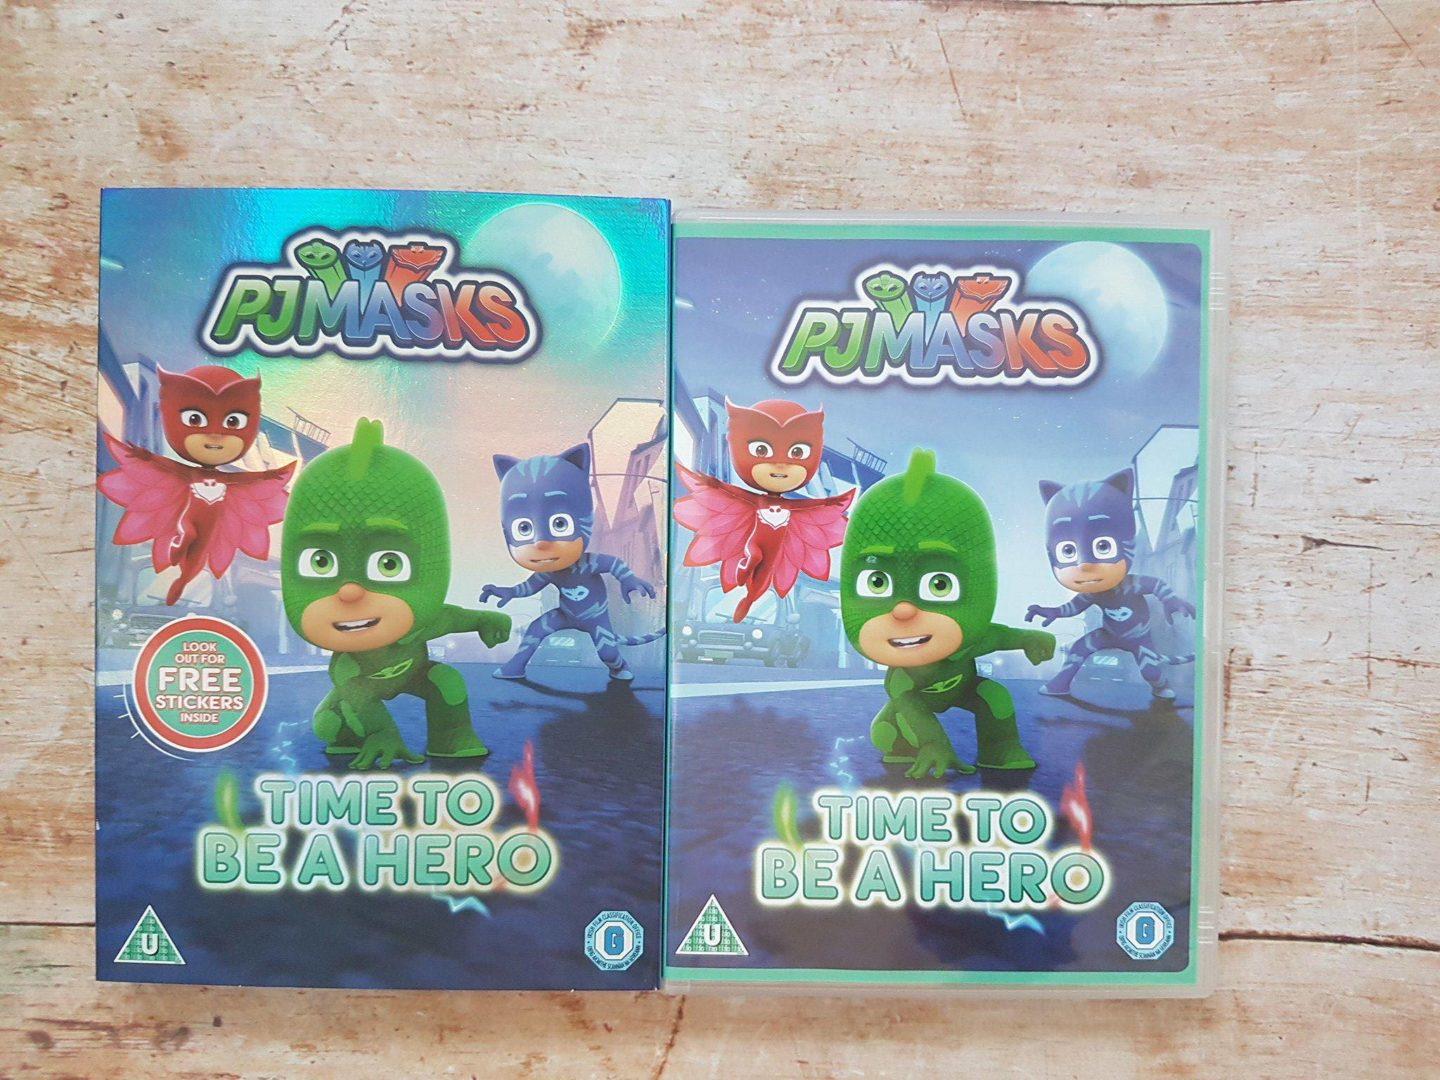 PJ Masks Time to be a Hero DVD Review